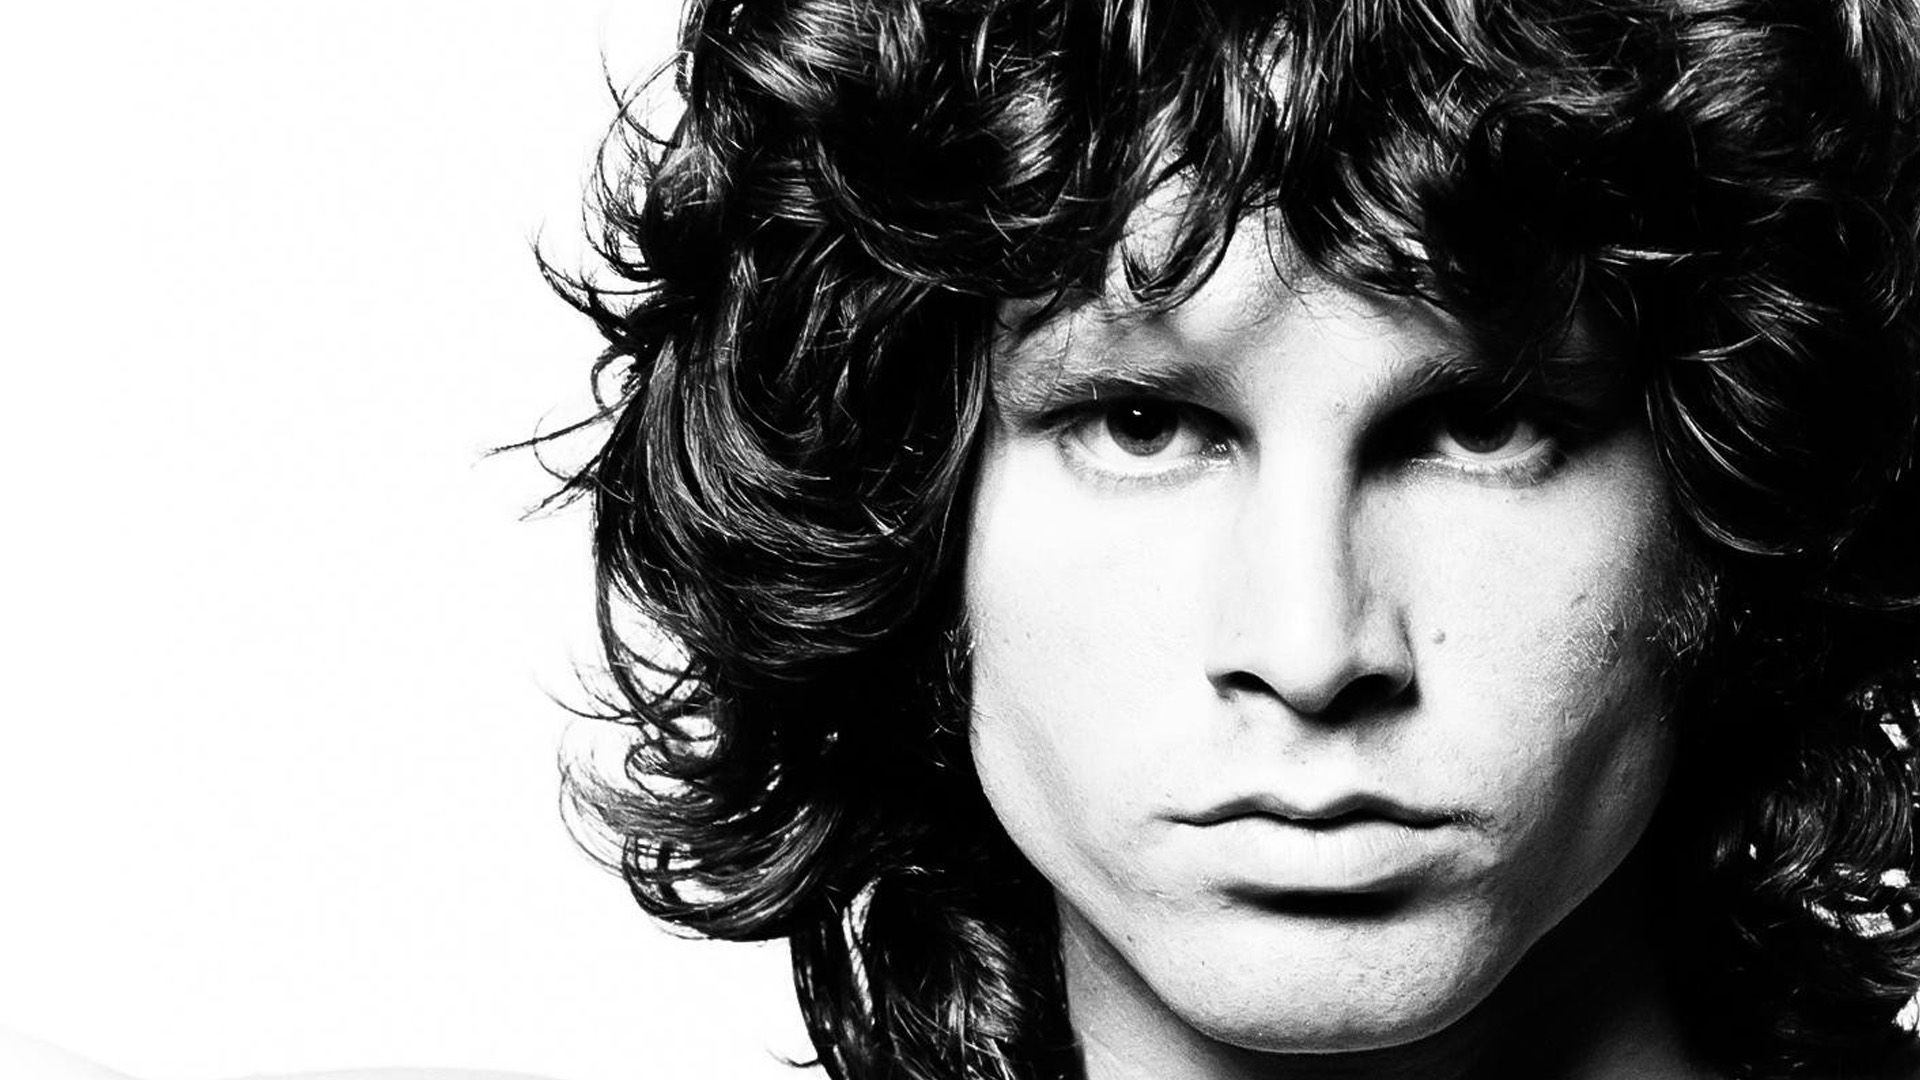 Hd Jim Morrison Wallpapers Hdcoolwallpapers Com Jim Morrison